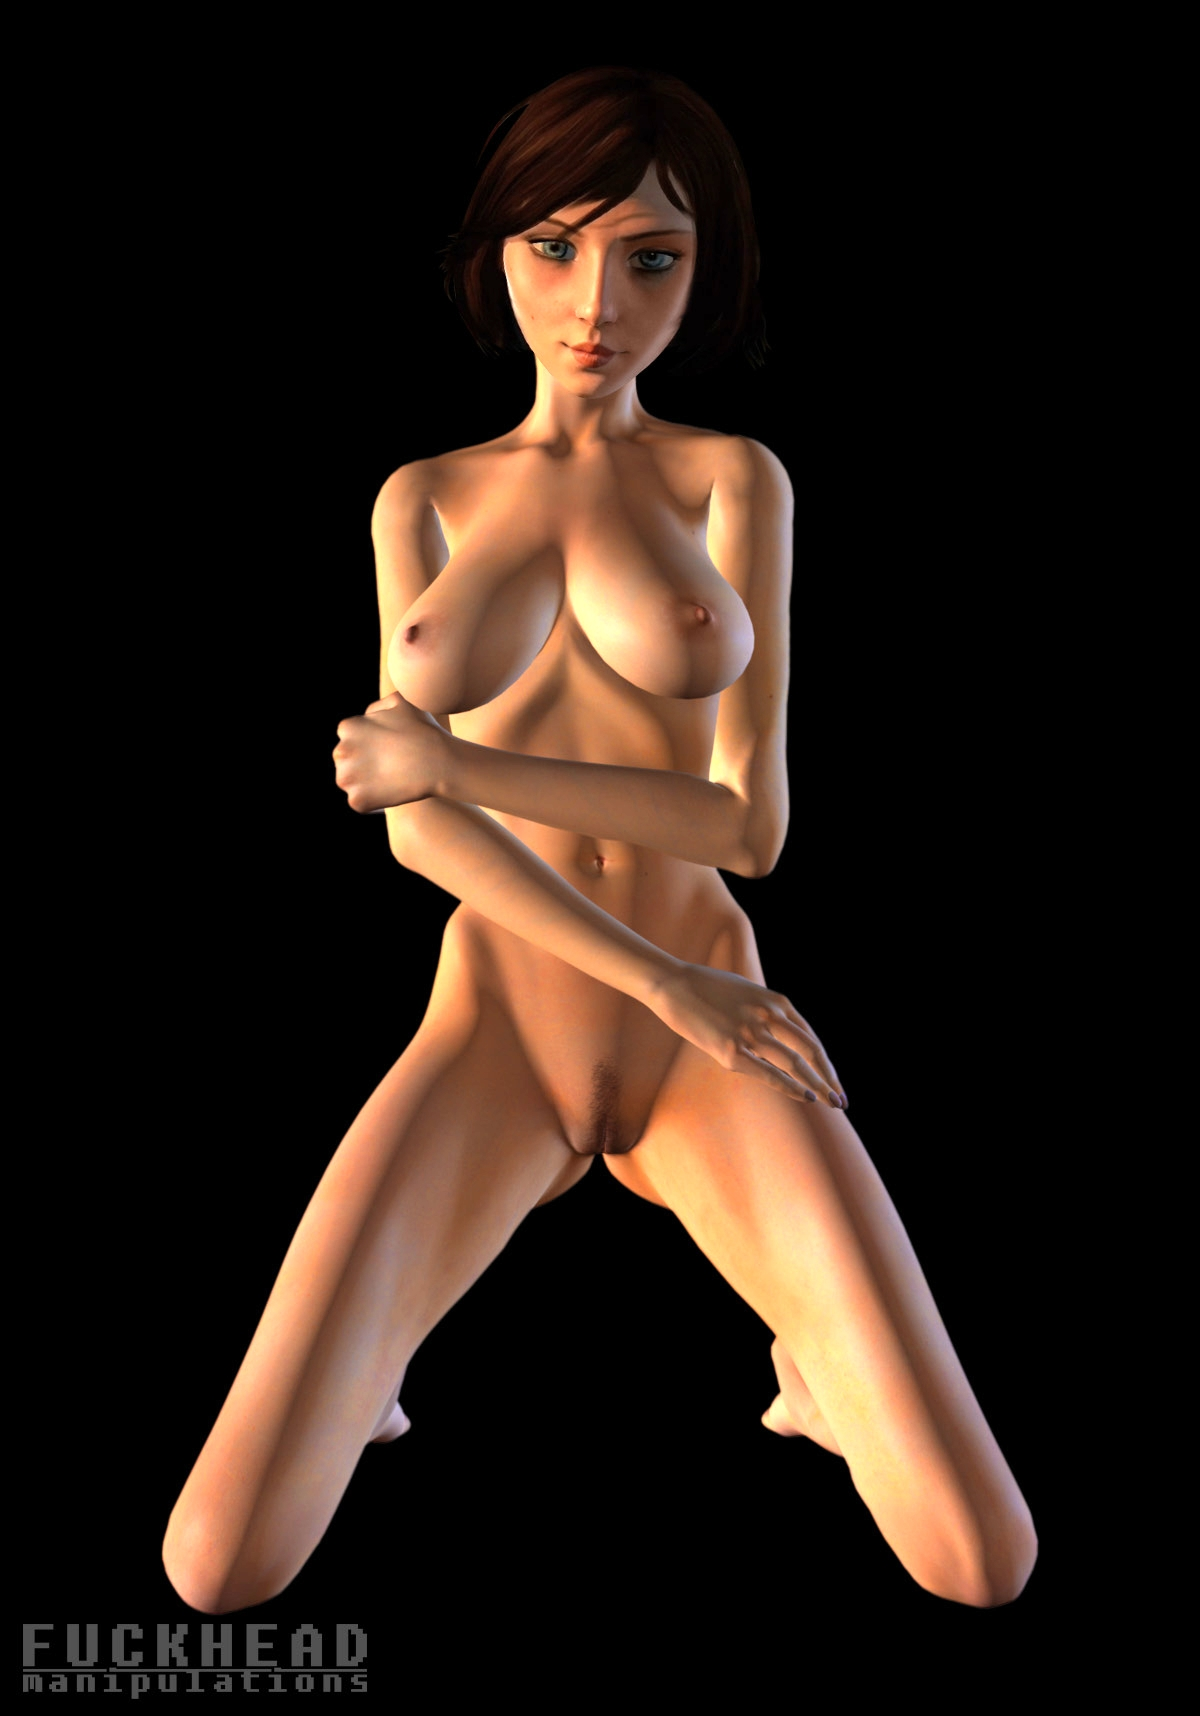 Bioshock infinite elizabeth nude mod exposed pictures